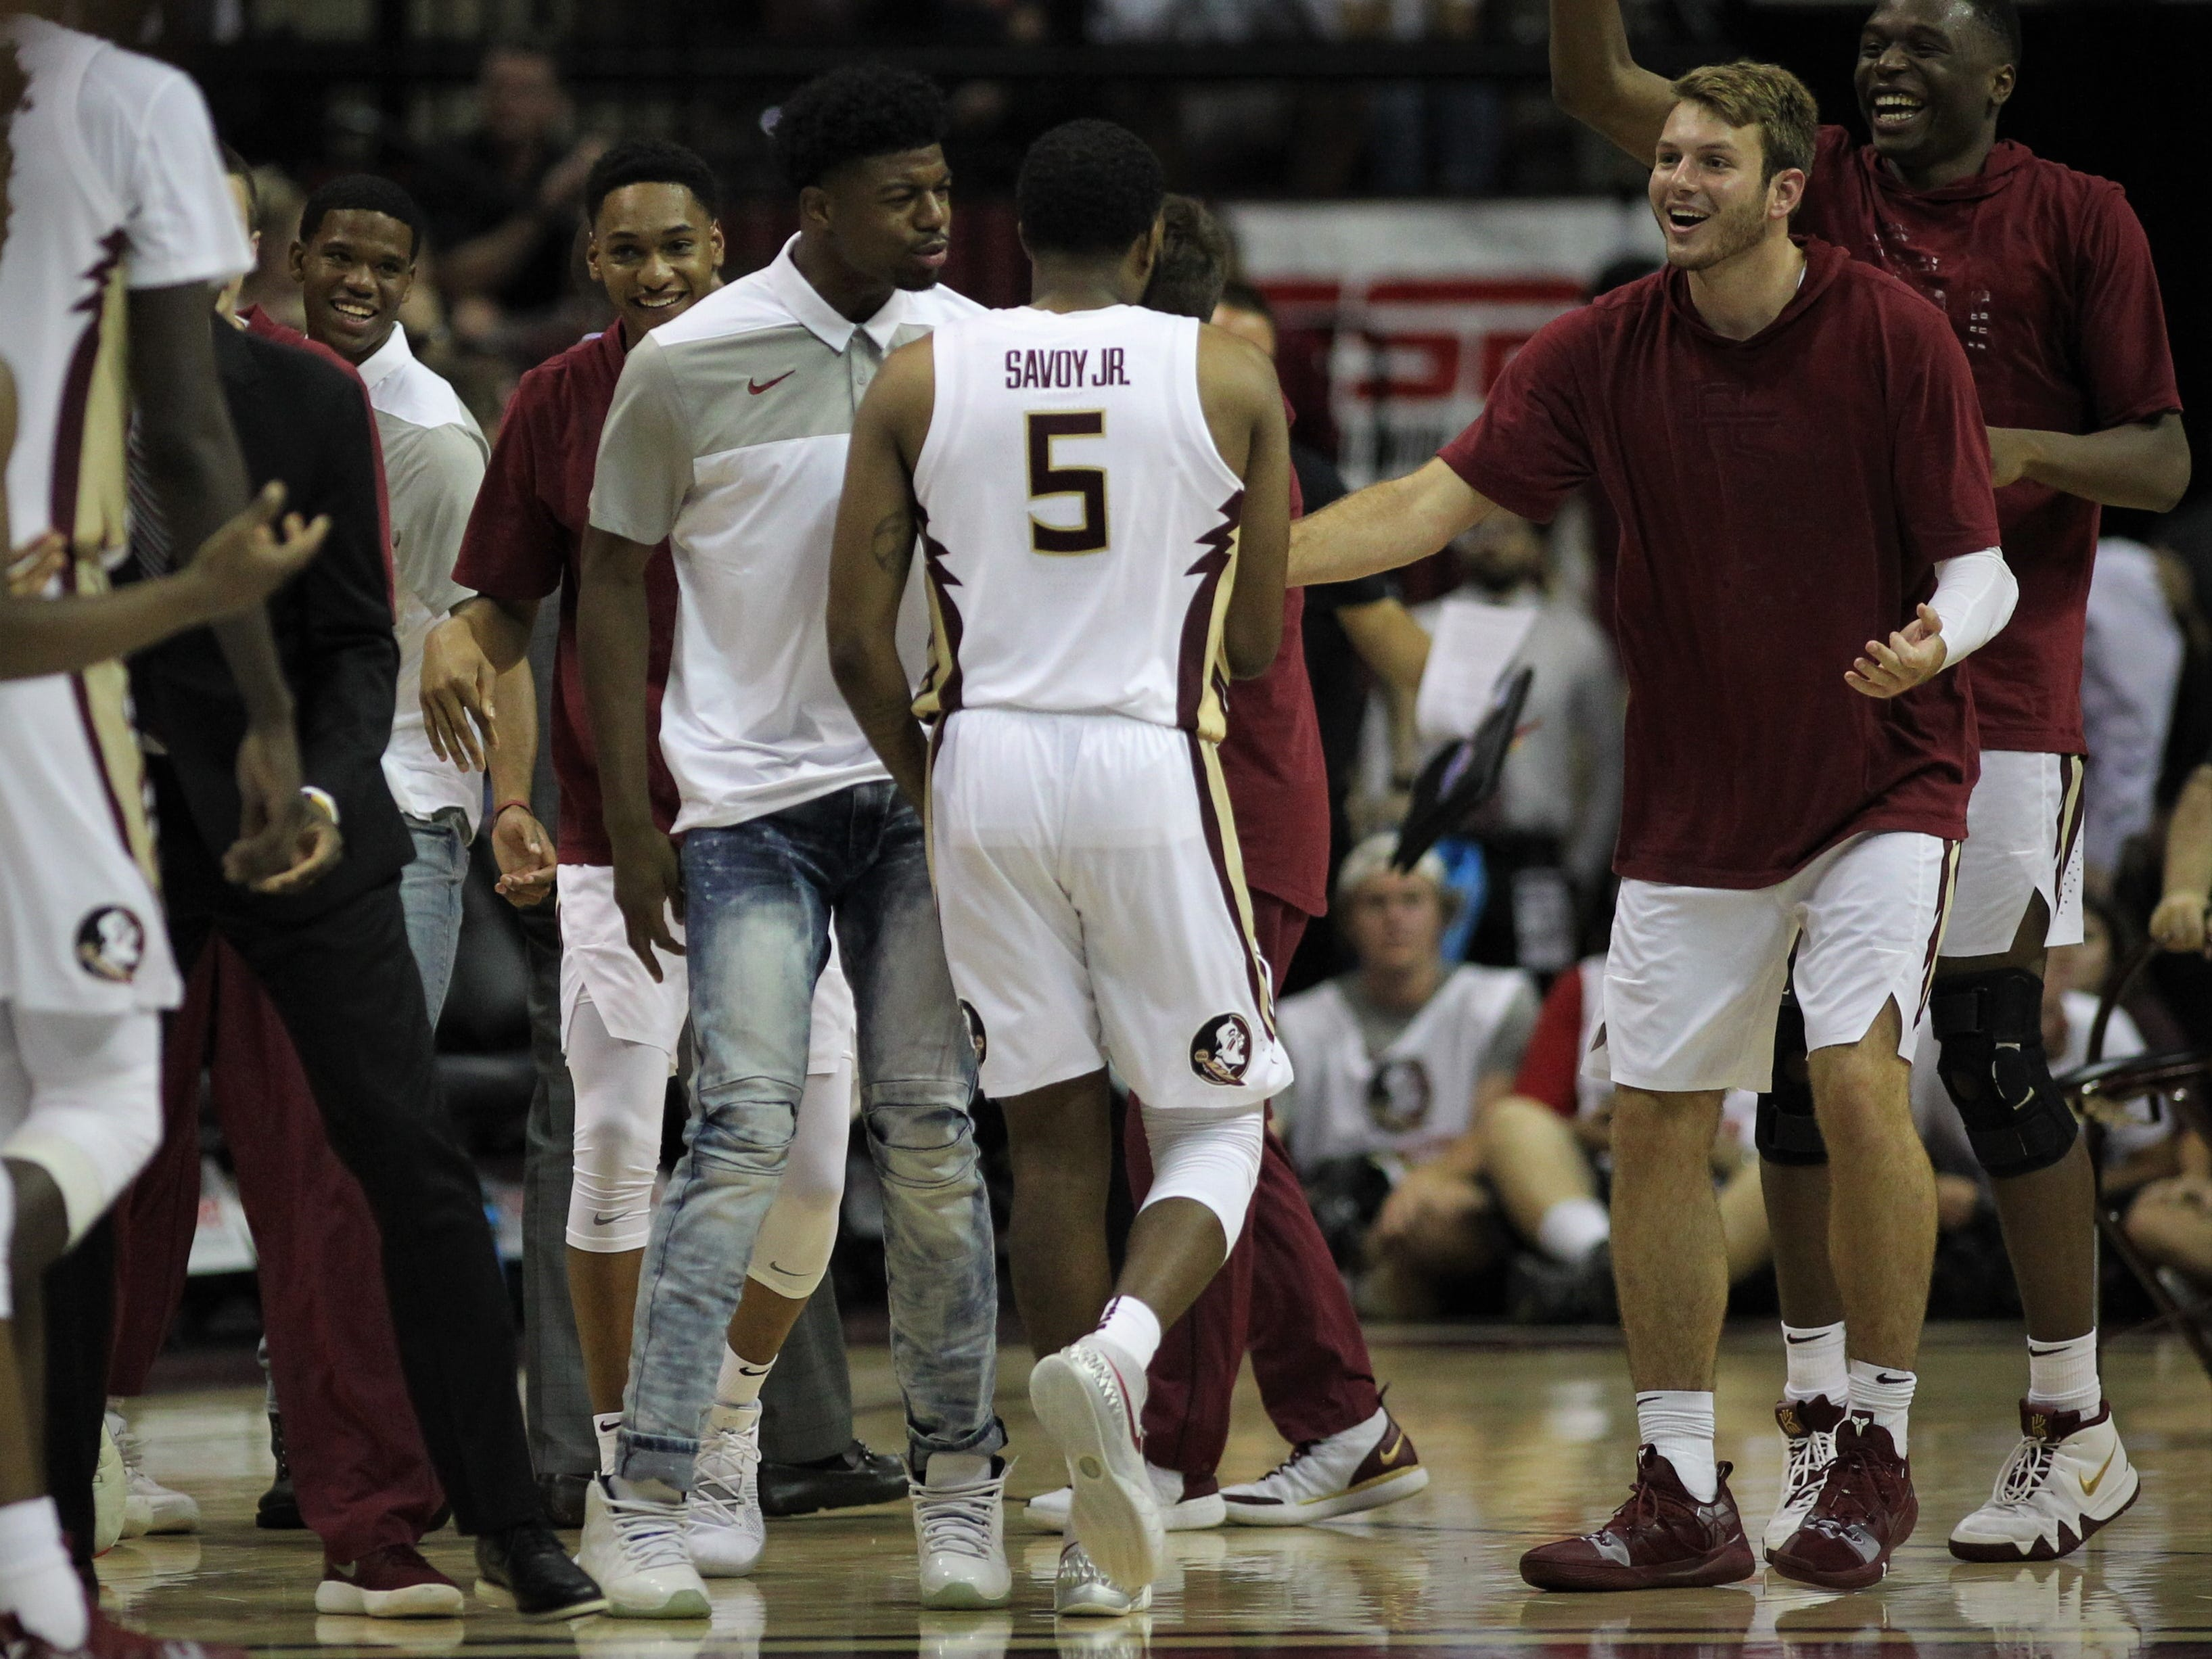 Florida State's P.J. Savoy is congratulated by teammates after hitting his fifth 3-pointer against Florida during the Sunshine Showdown game Tuesday at the Tucker Civic Center.